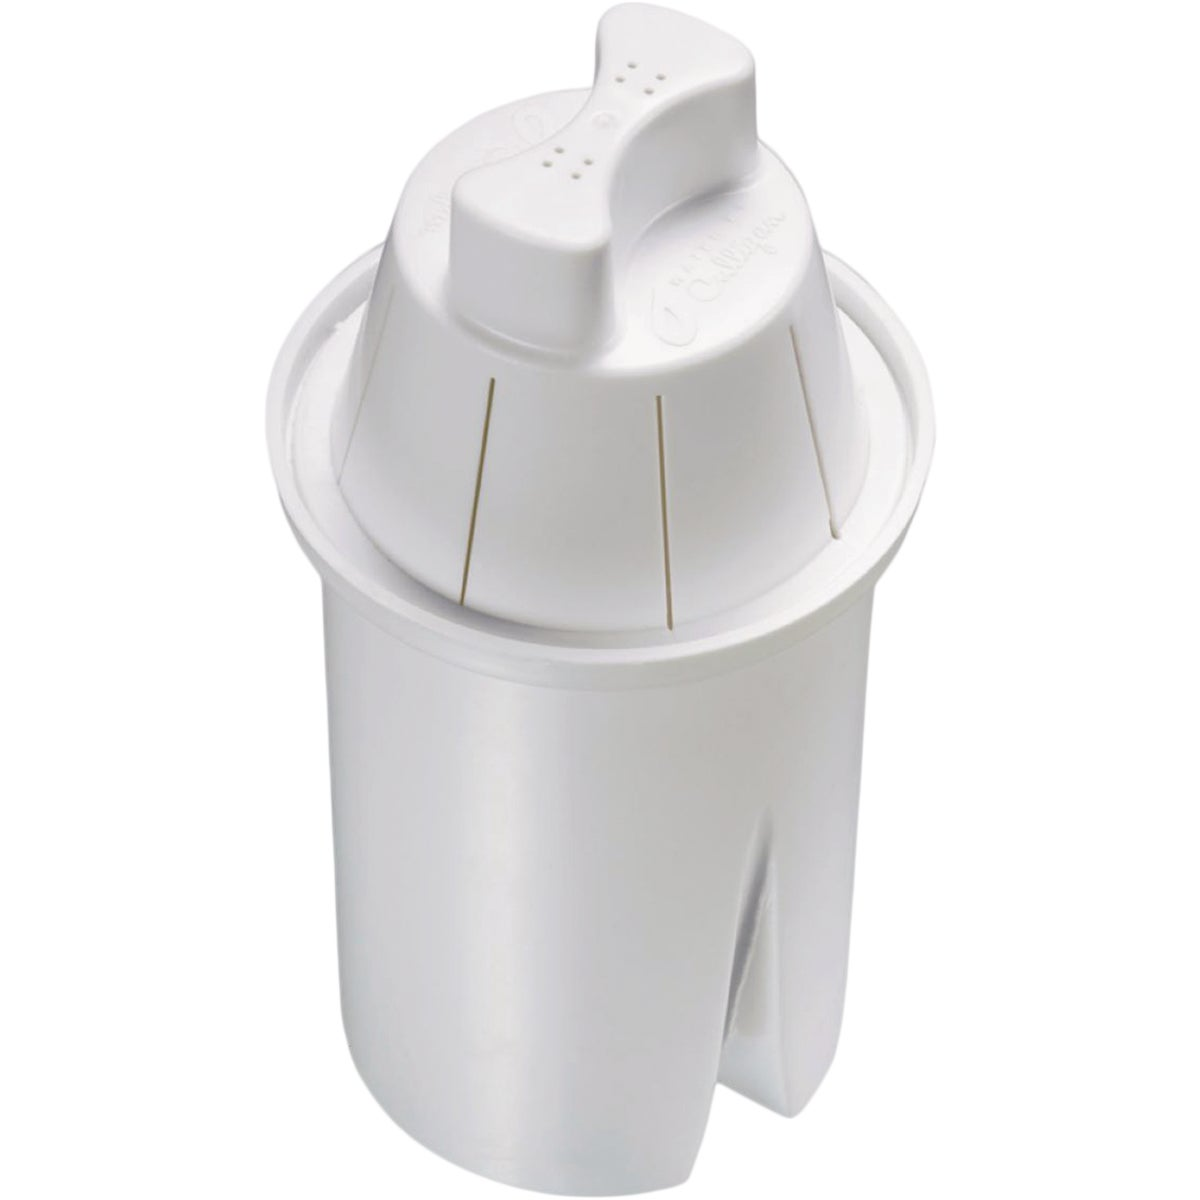 REPLACEMENT WATER FILTER - PR-1 by Culligan